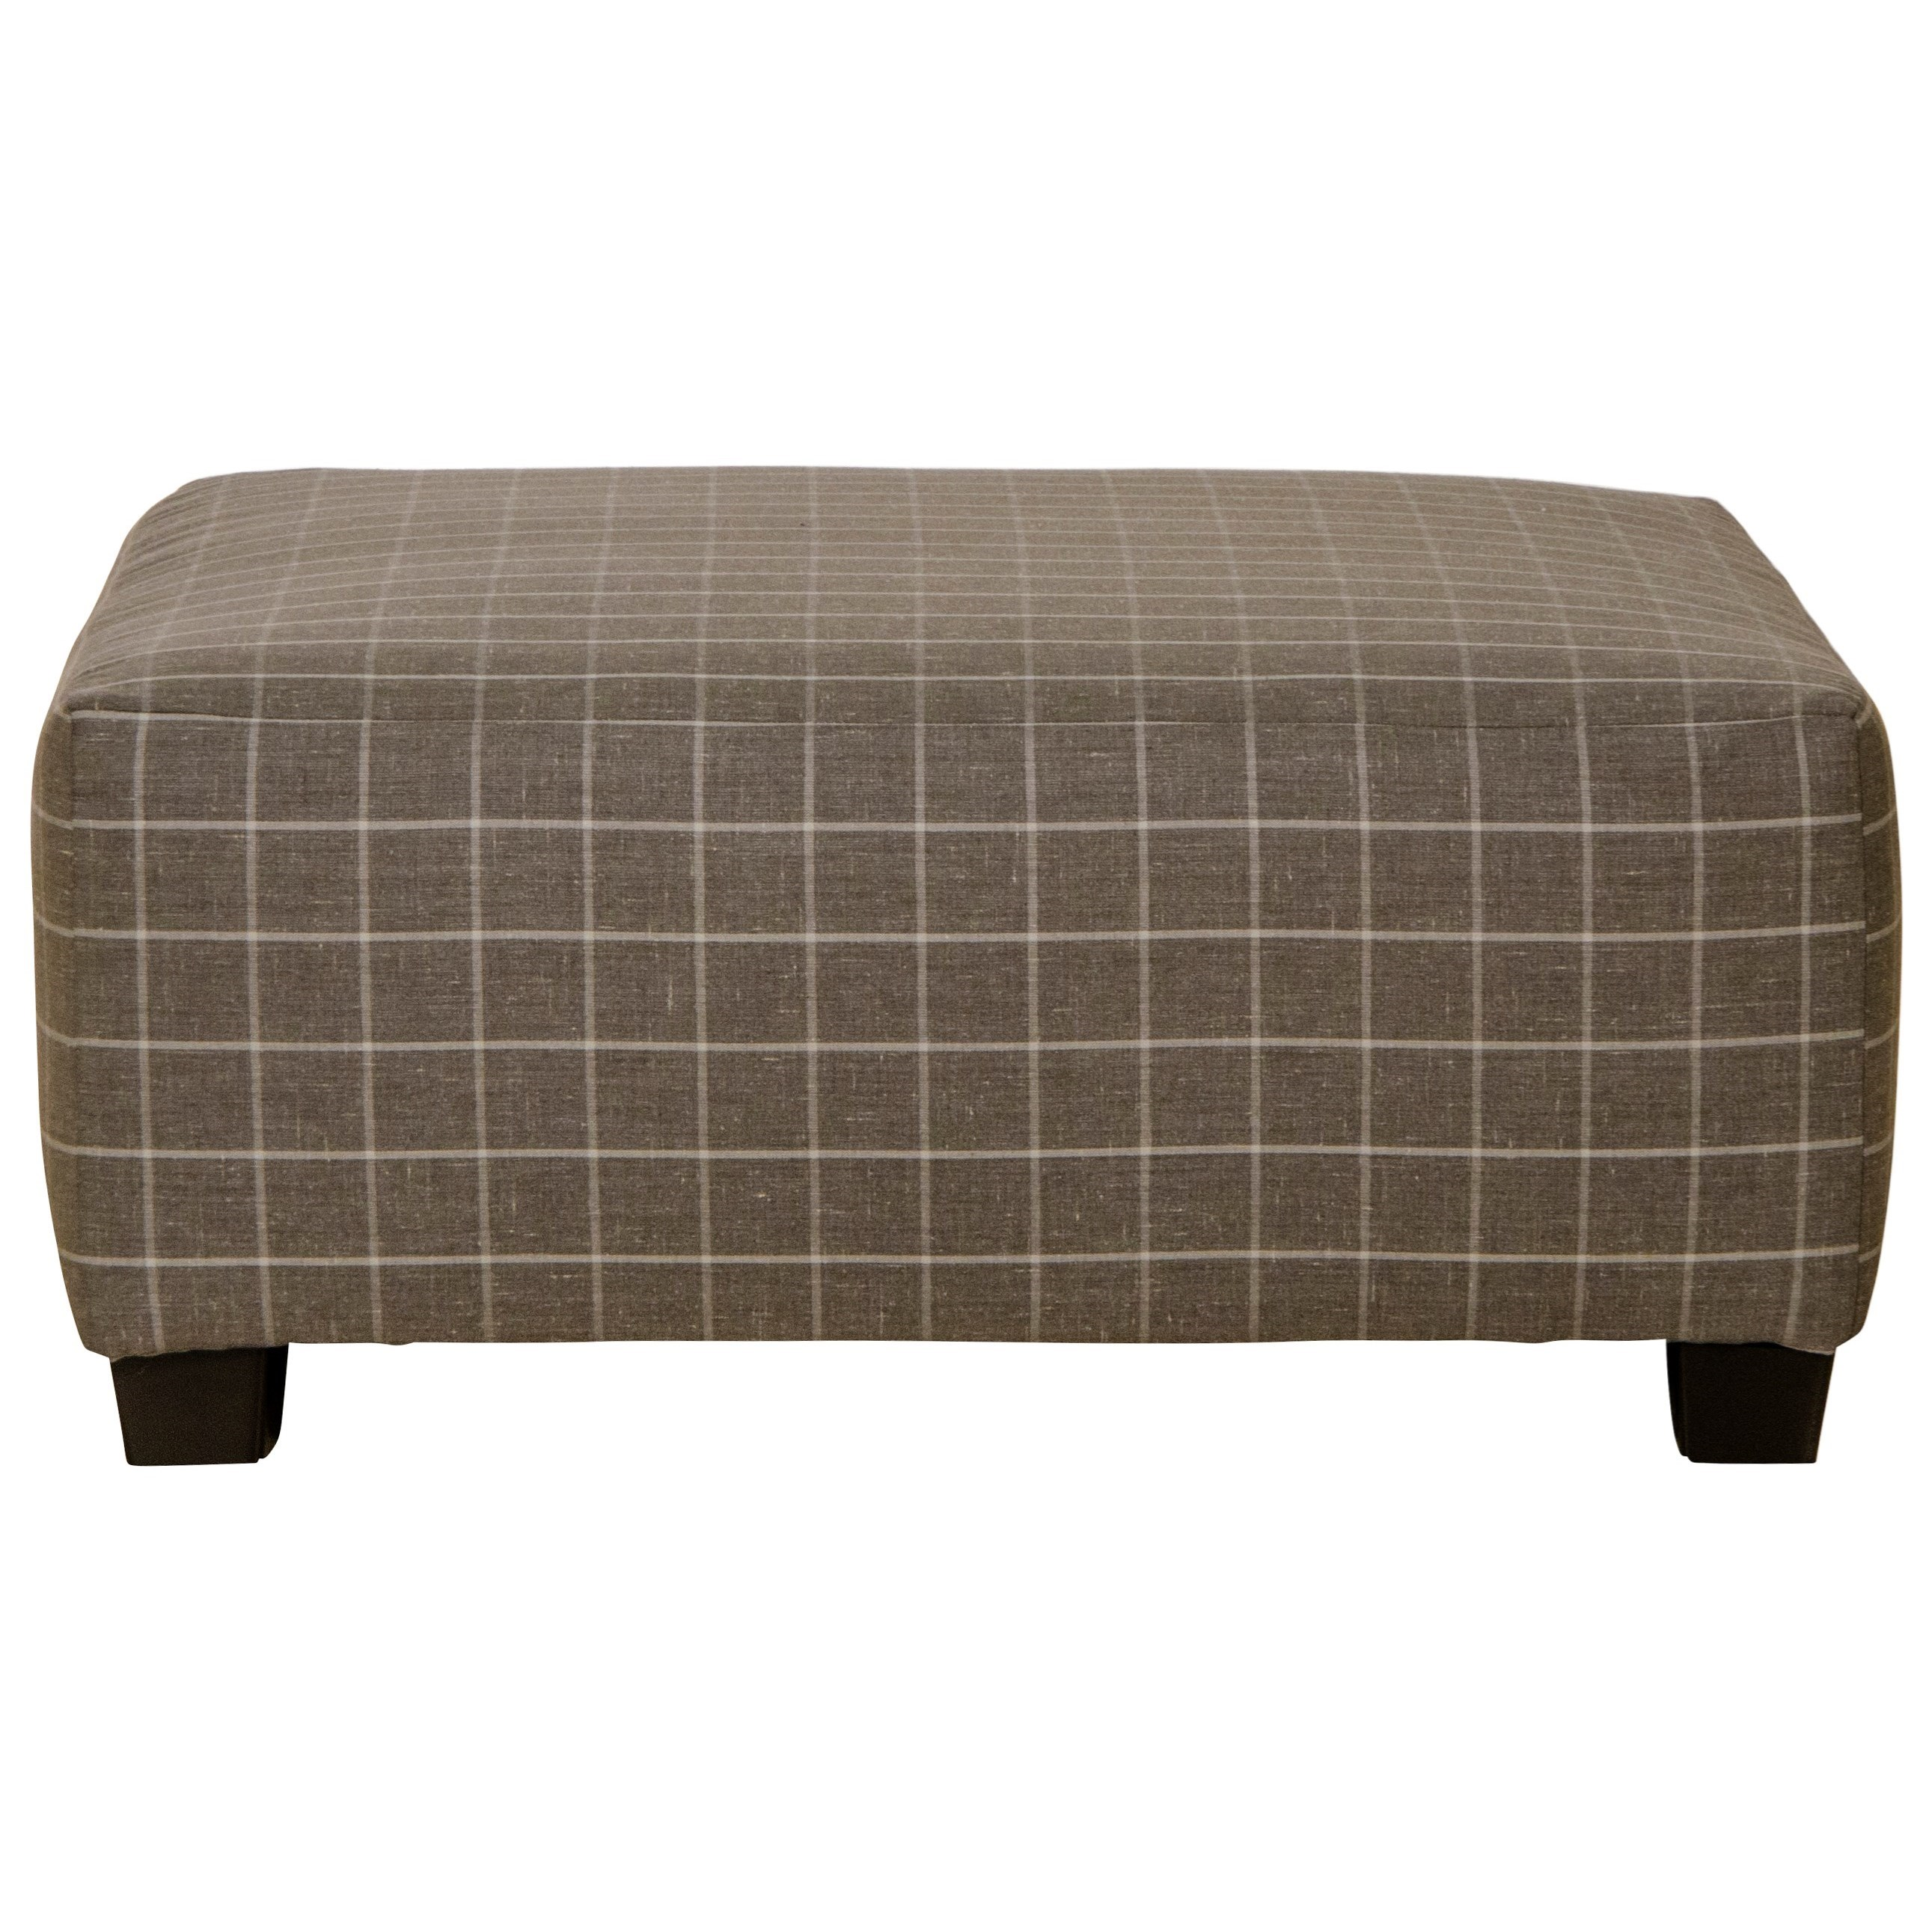 Nero Cocktail Ottoman by Jackson Furniture at EFO Furniture Outlet